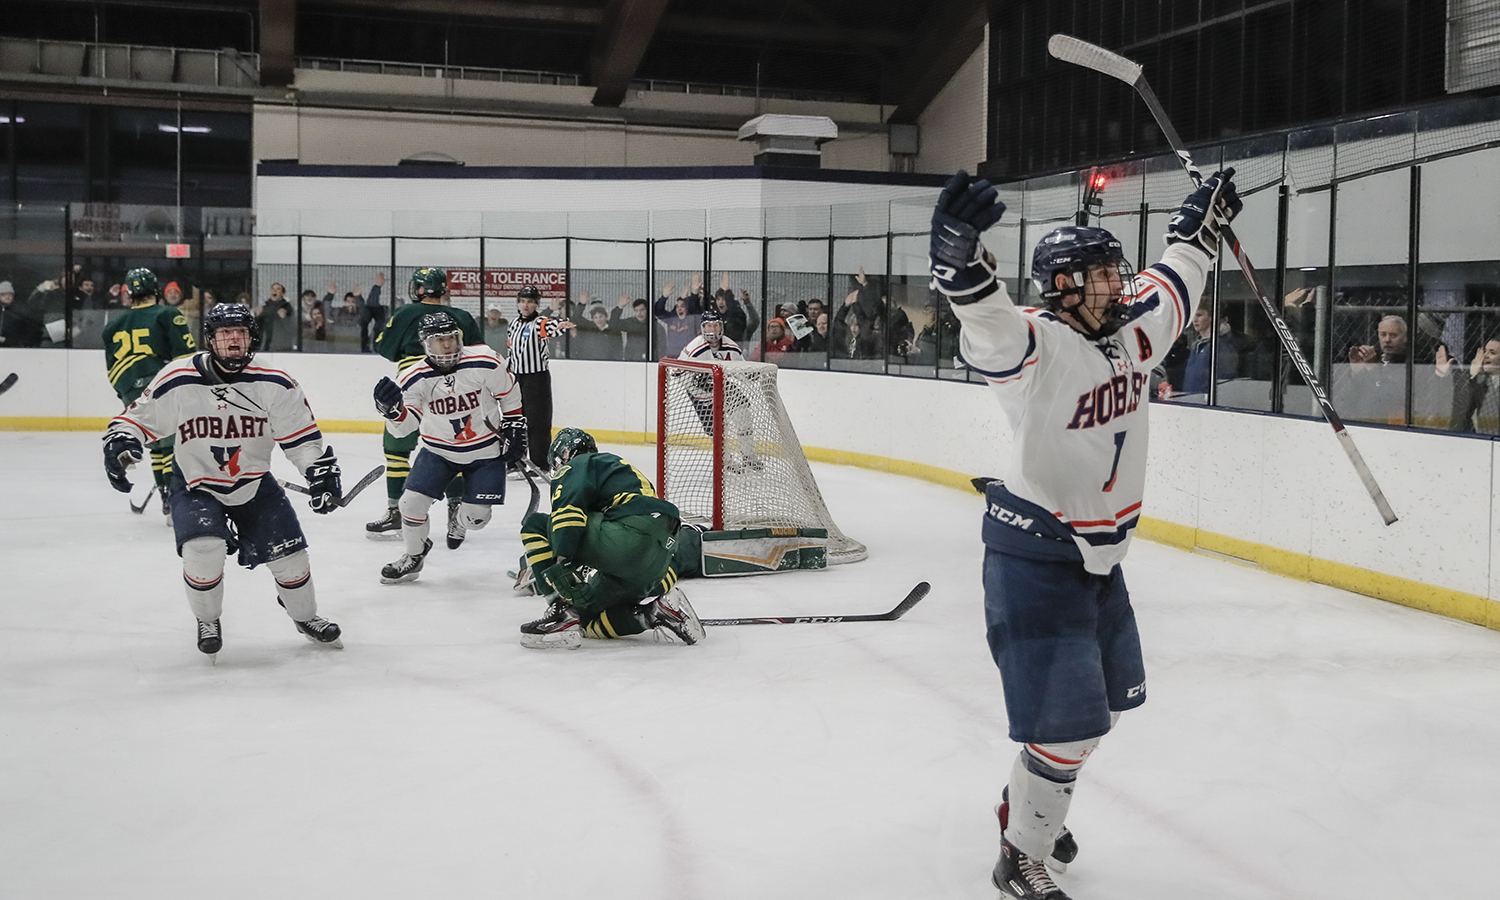 Travis Schneider '21 celebrates Hobart Hockey's third goal to lift the Statesmen over Skidmore College in the semifinal round of the New England Hockey Conference tournament.